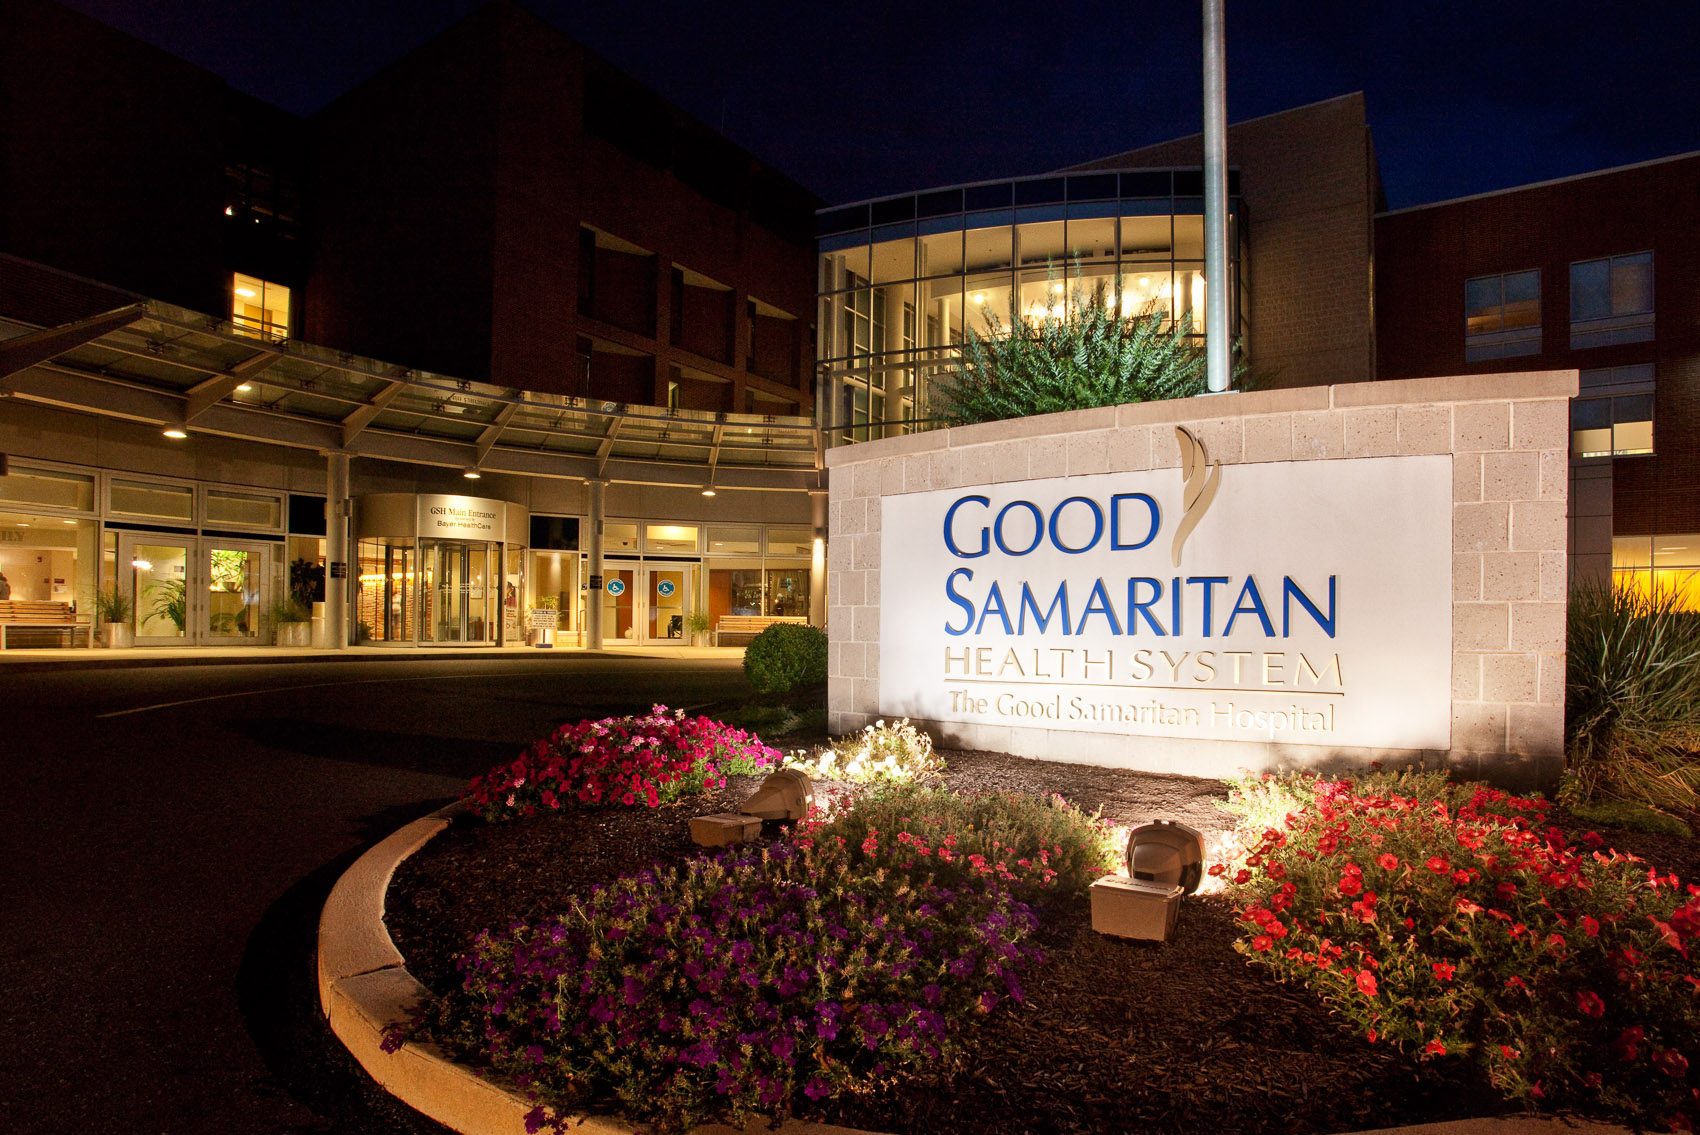 Twilight at the Good Samaritan Hospital in Lebanon, PA | J. Eldon Zimmerman Photography | Lancaster, PA Architecture Photographer